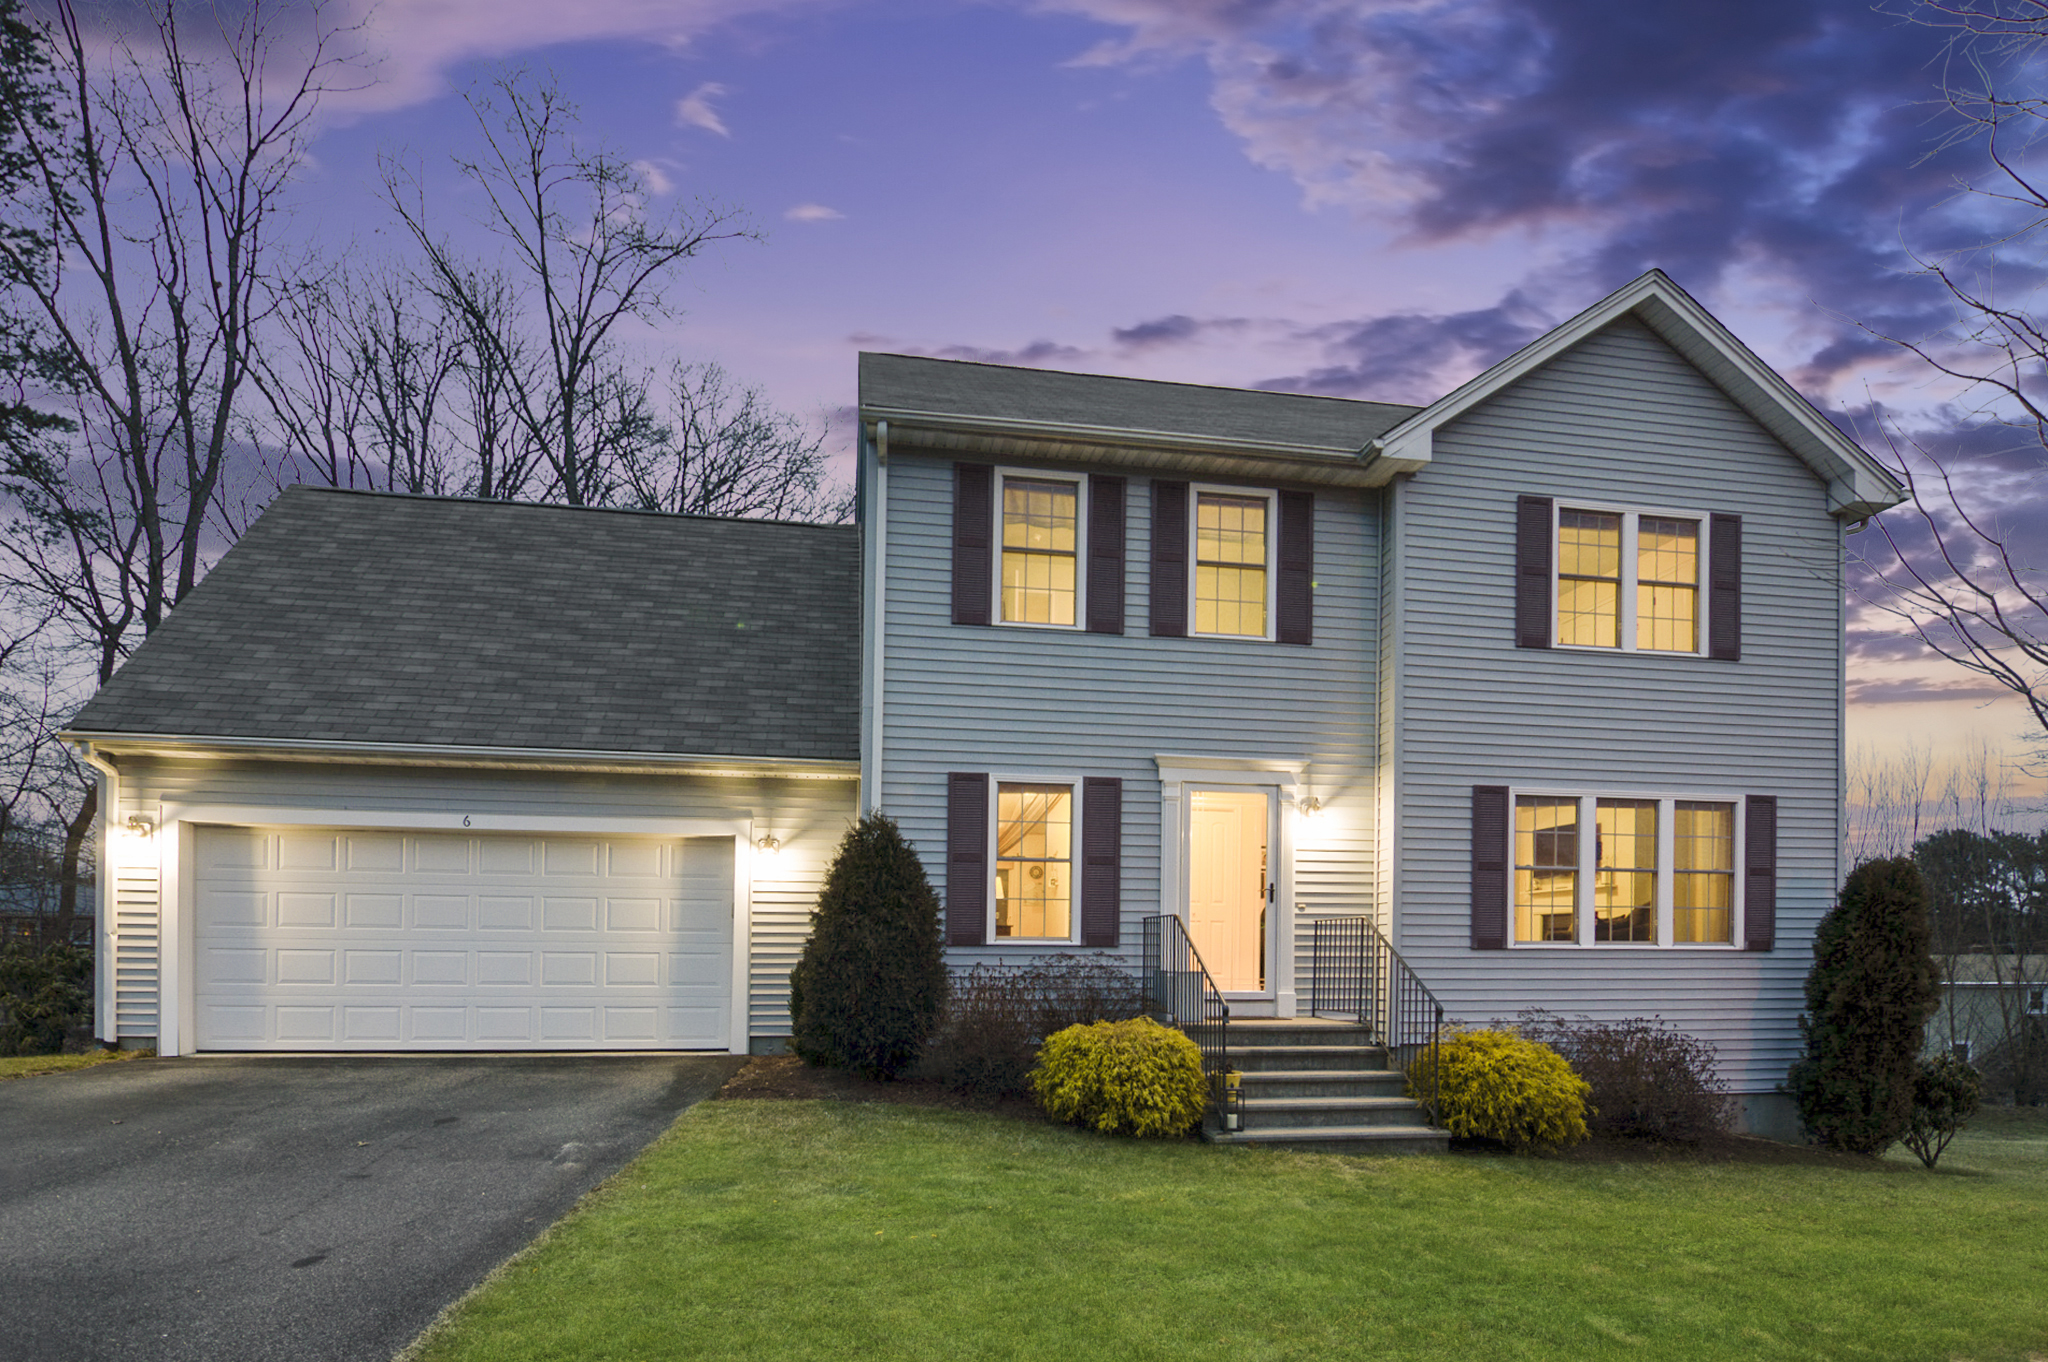 6 Sweet Fern Ln, Coventry, RI | Sat 1/18 from 11:00 - 1:00pm